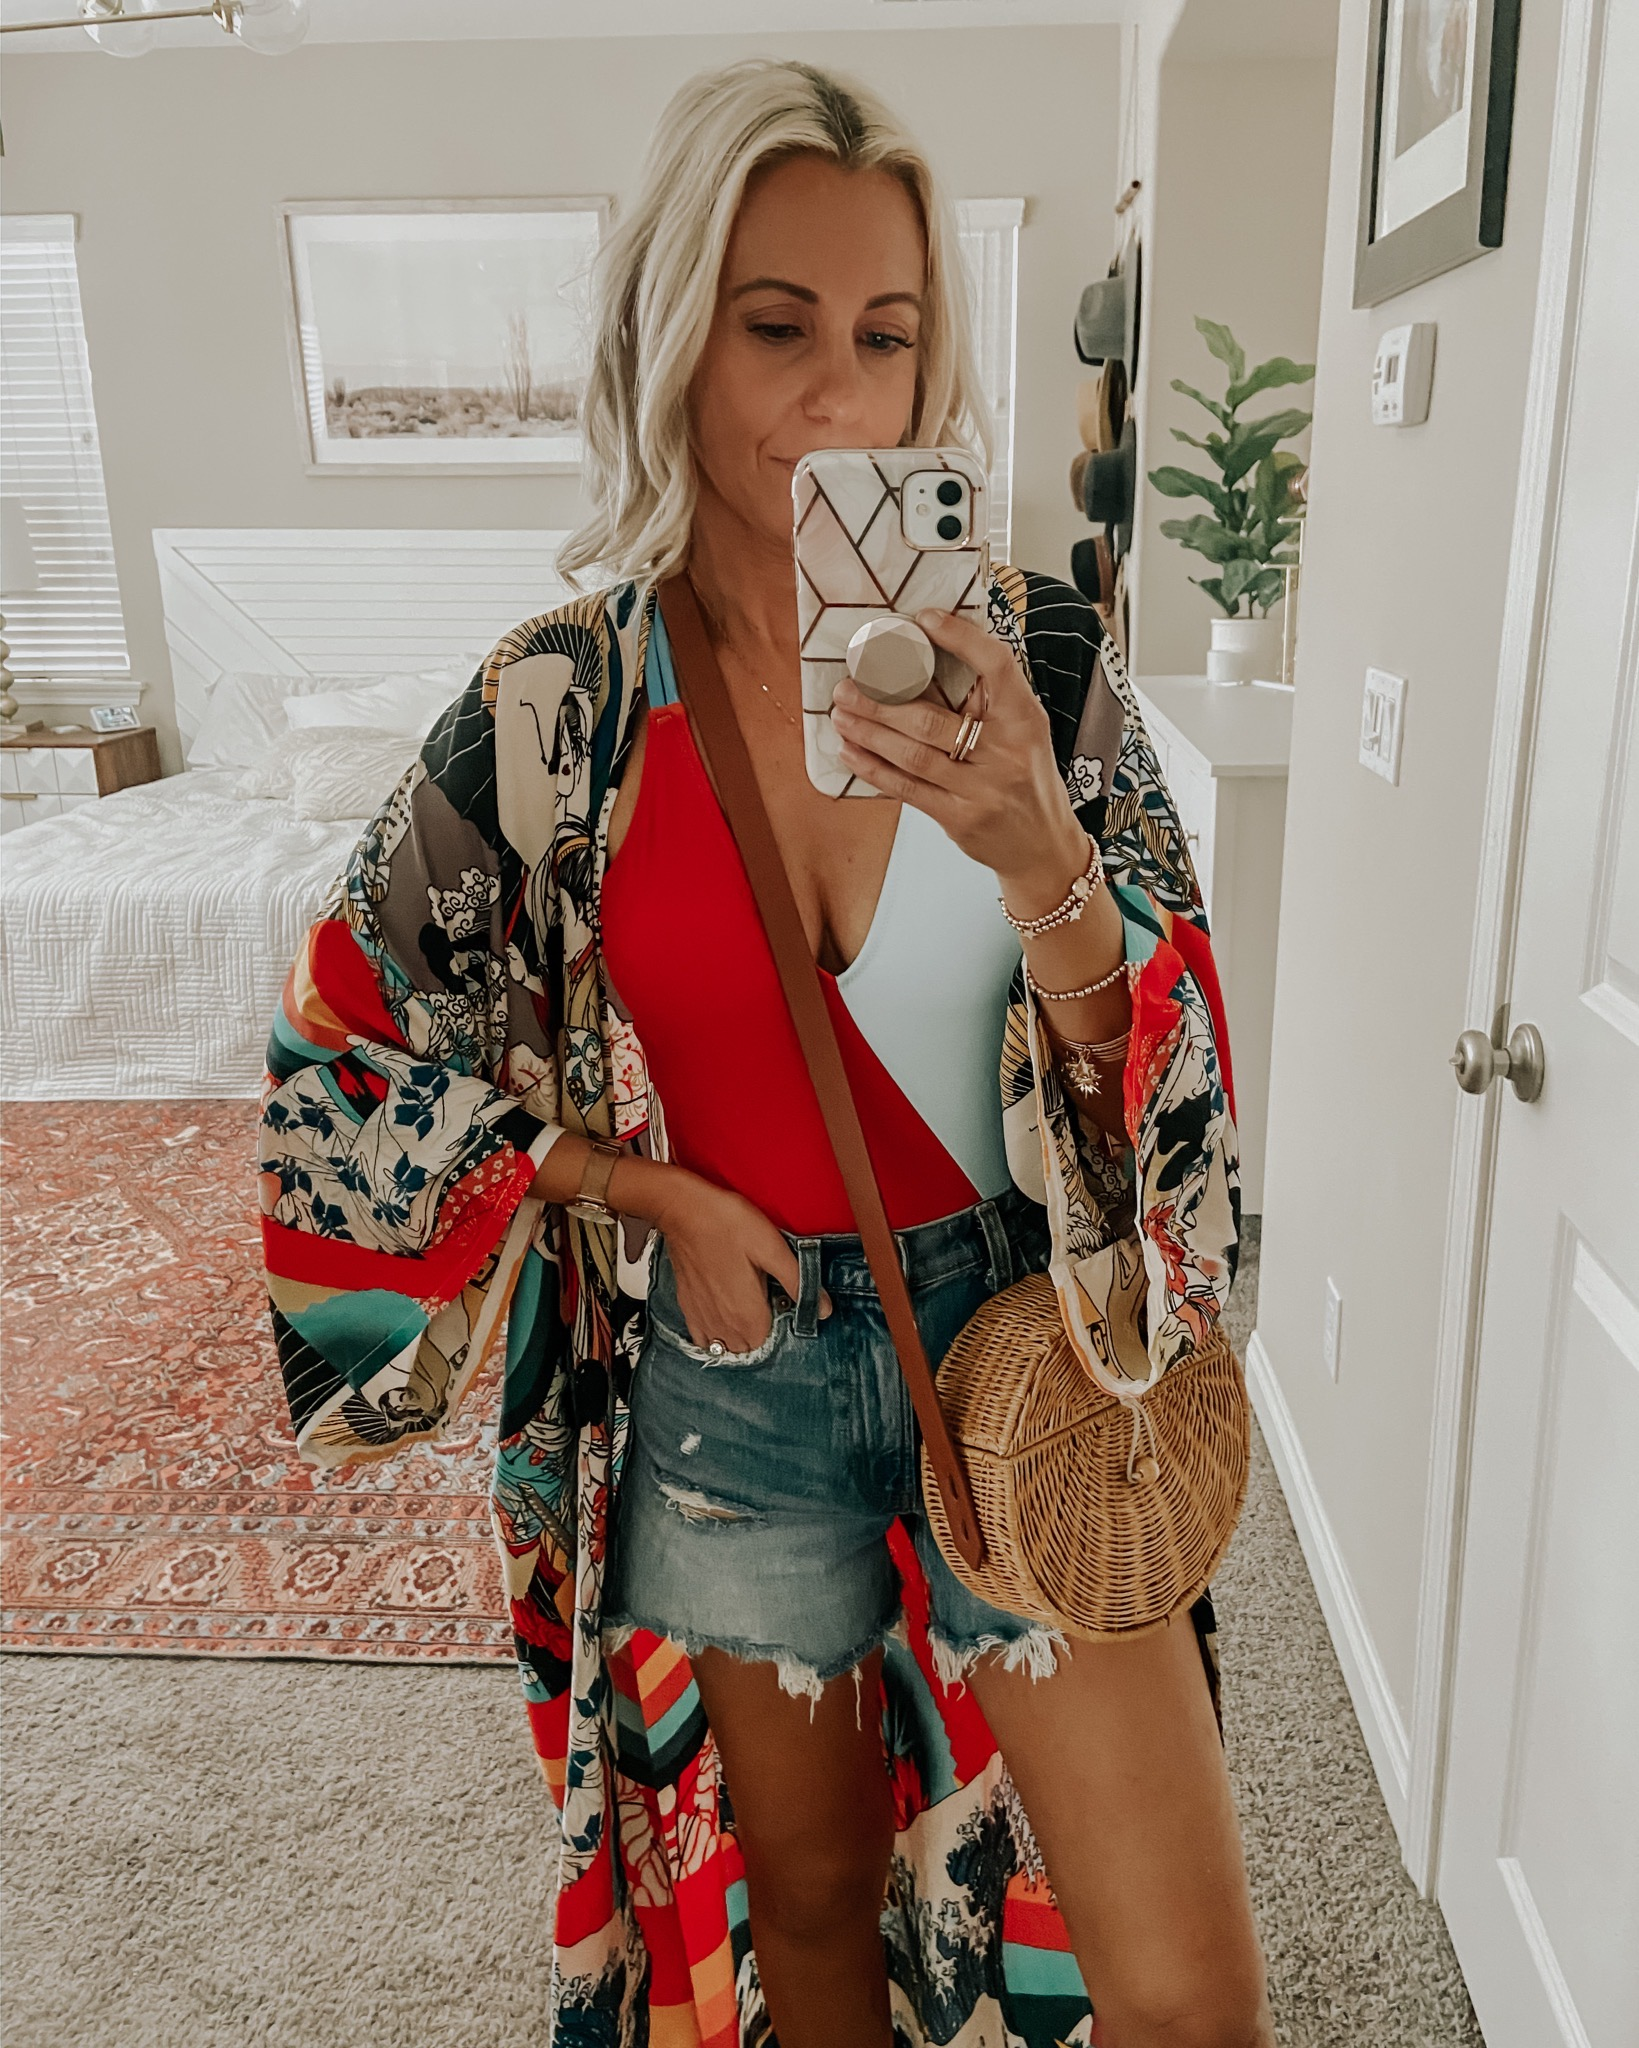 5 WAYS TO STYLE DENIM SHORTS- Jaclyn De Leon Style- Sharing a few different ways to style denim shorts from casual + cool to dressed up for date night